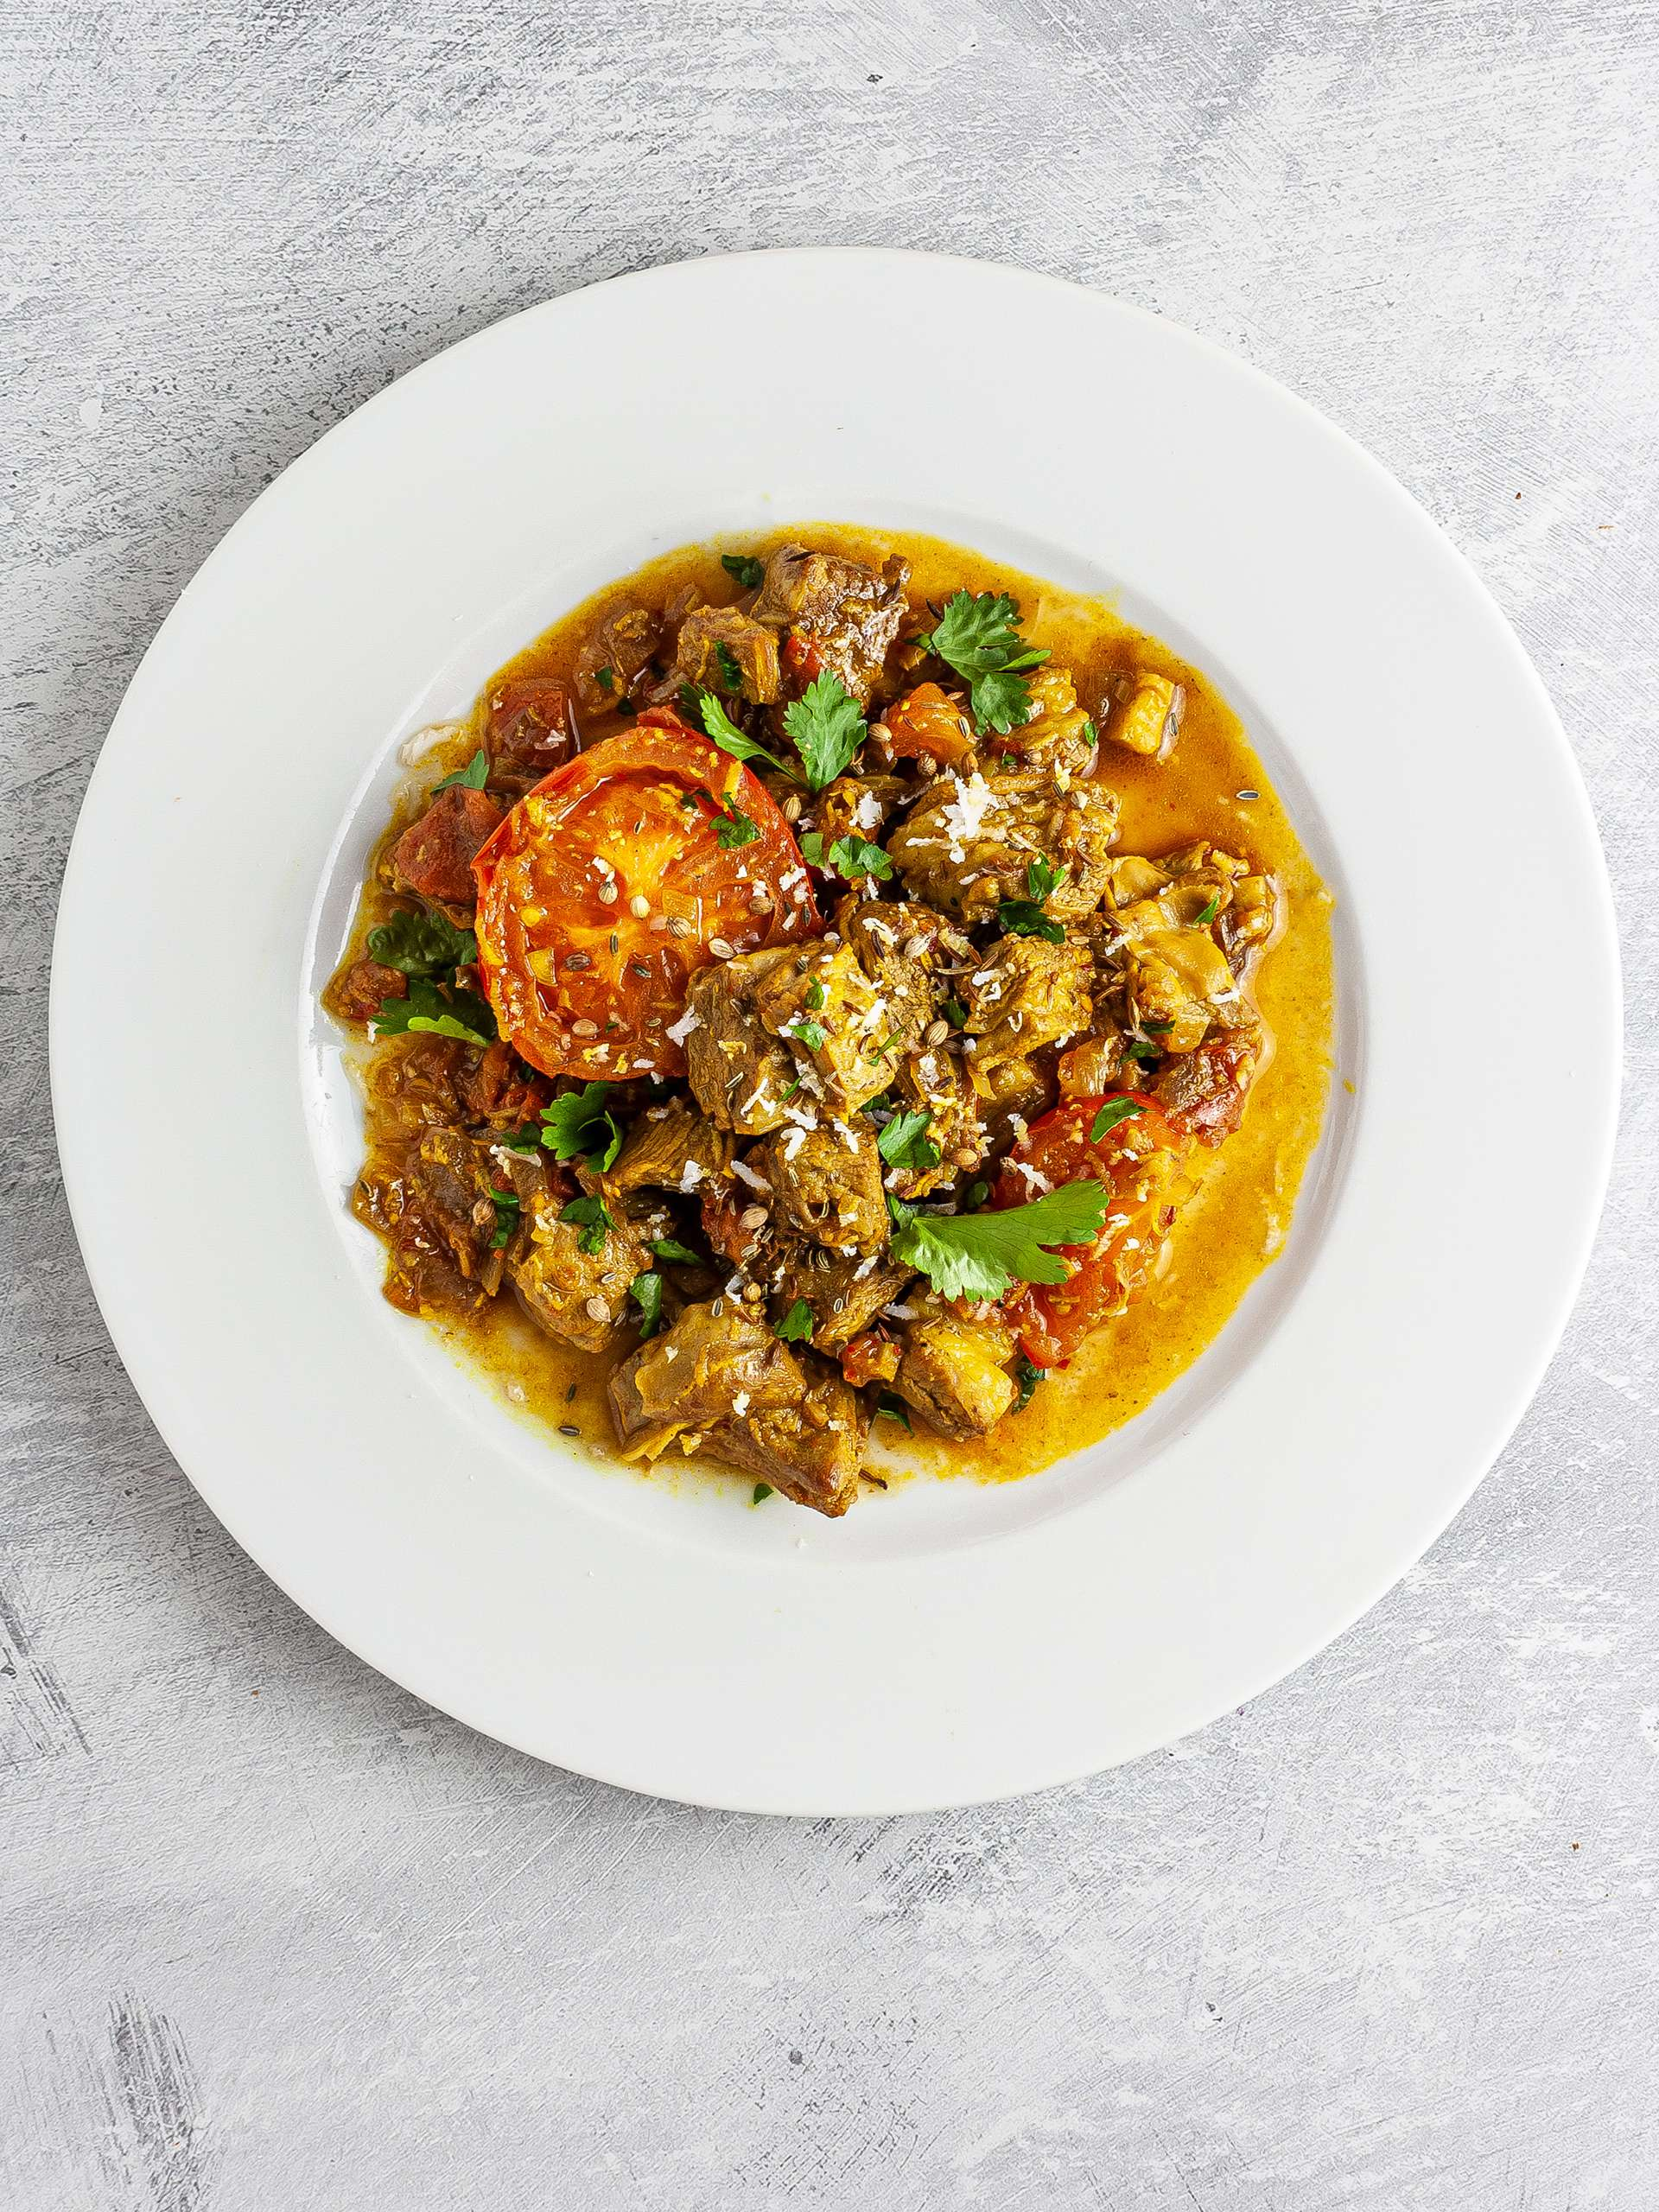 Lamb chettinad served with coconut and coriander